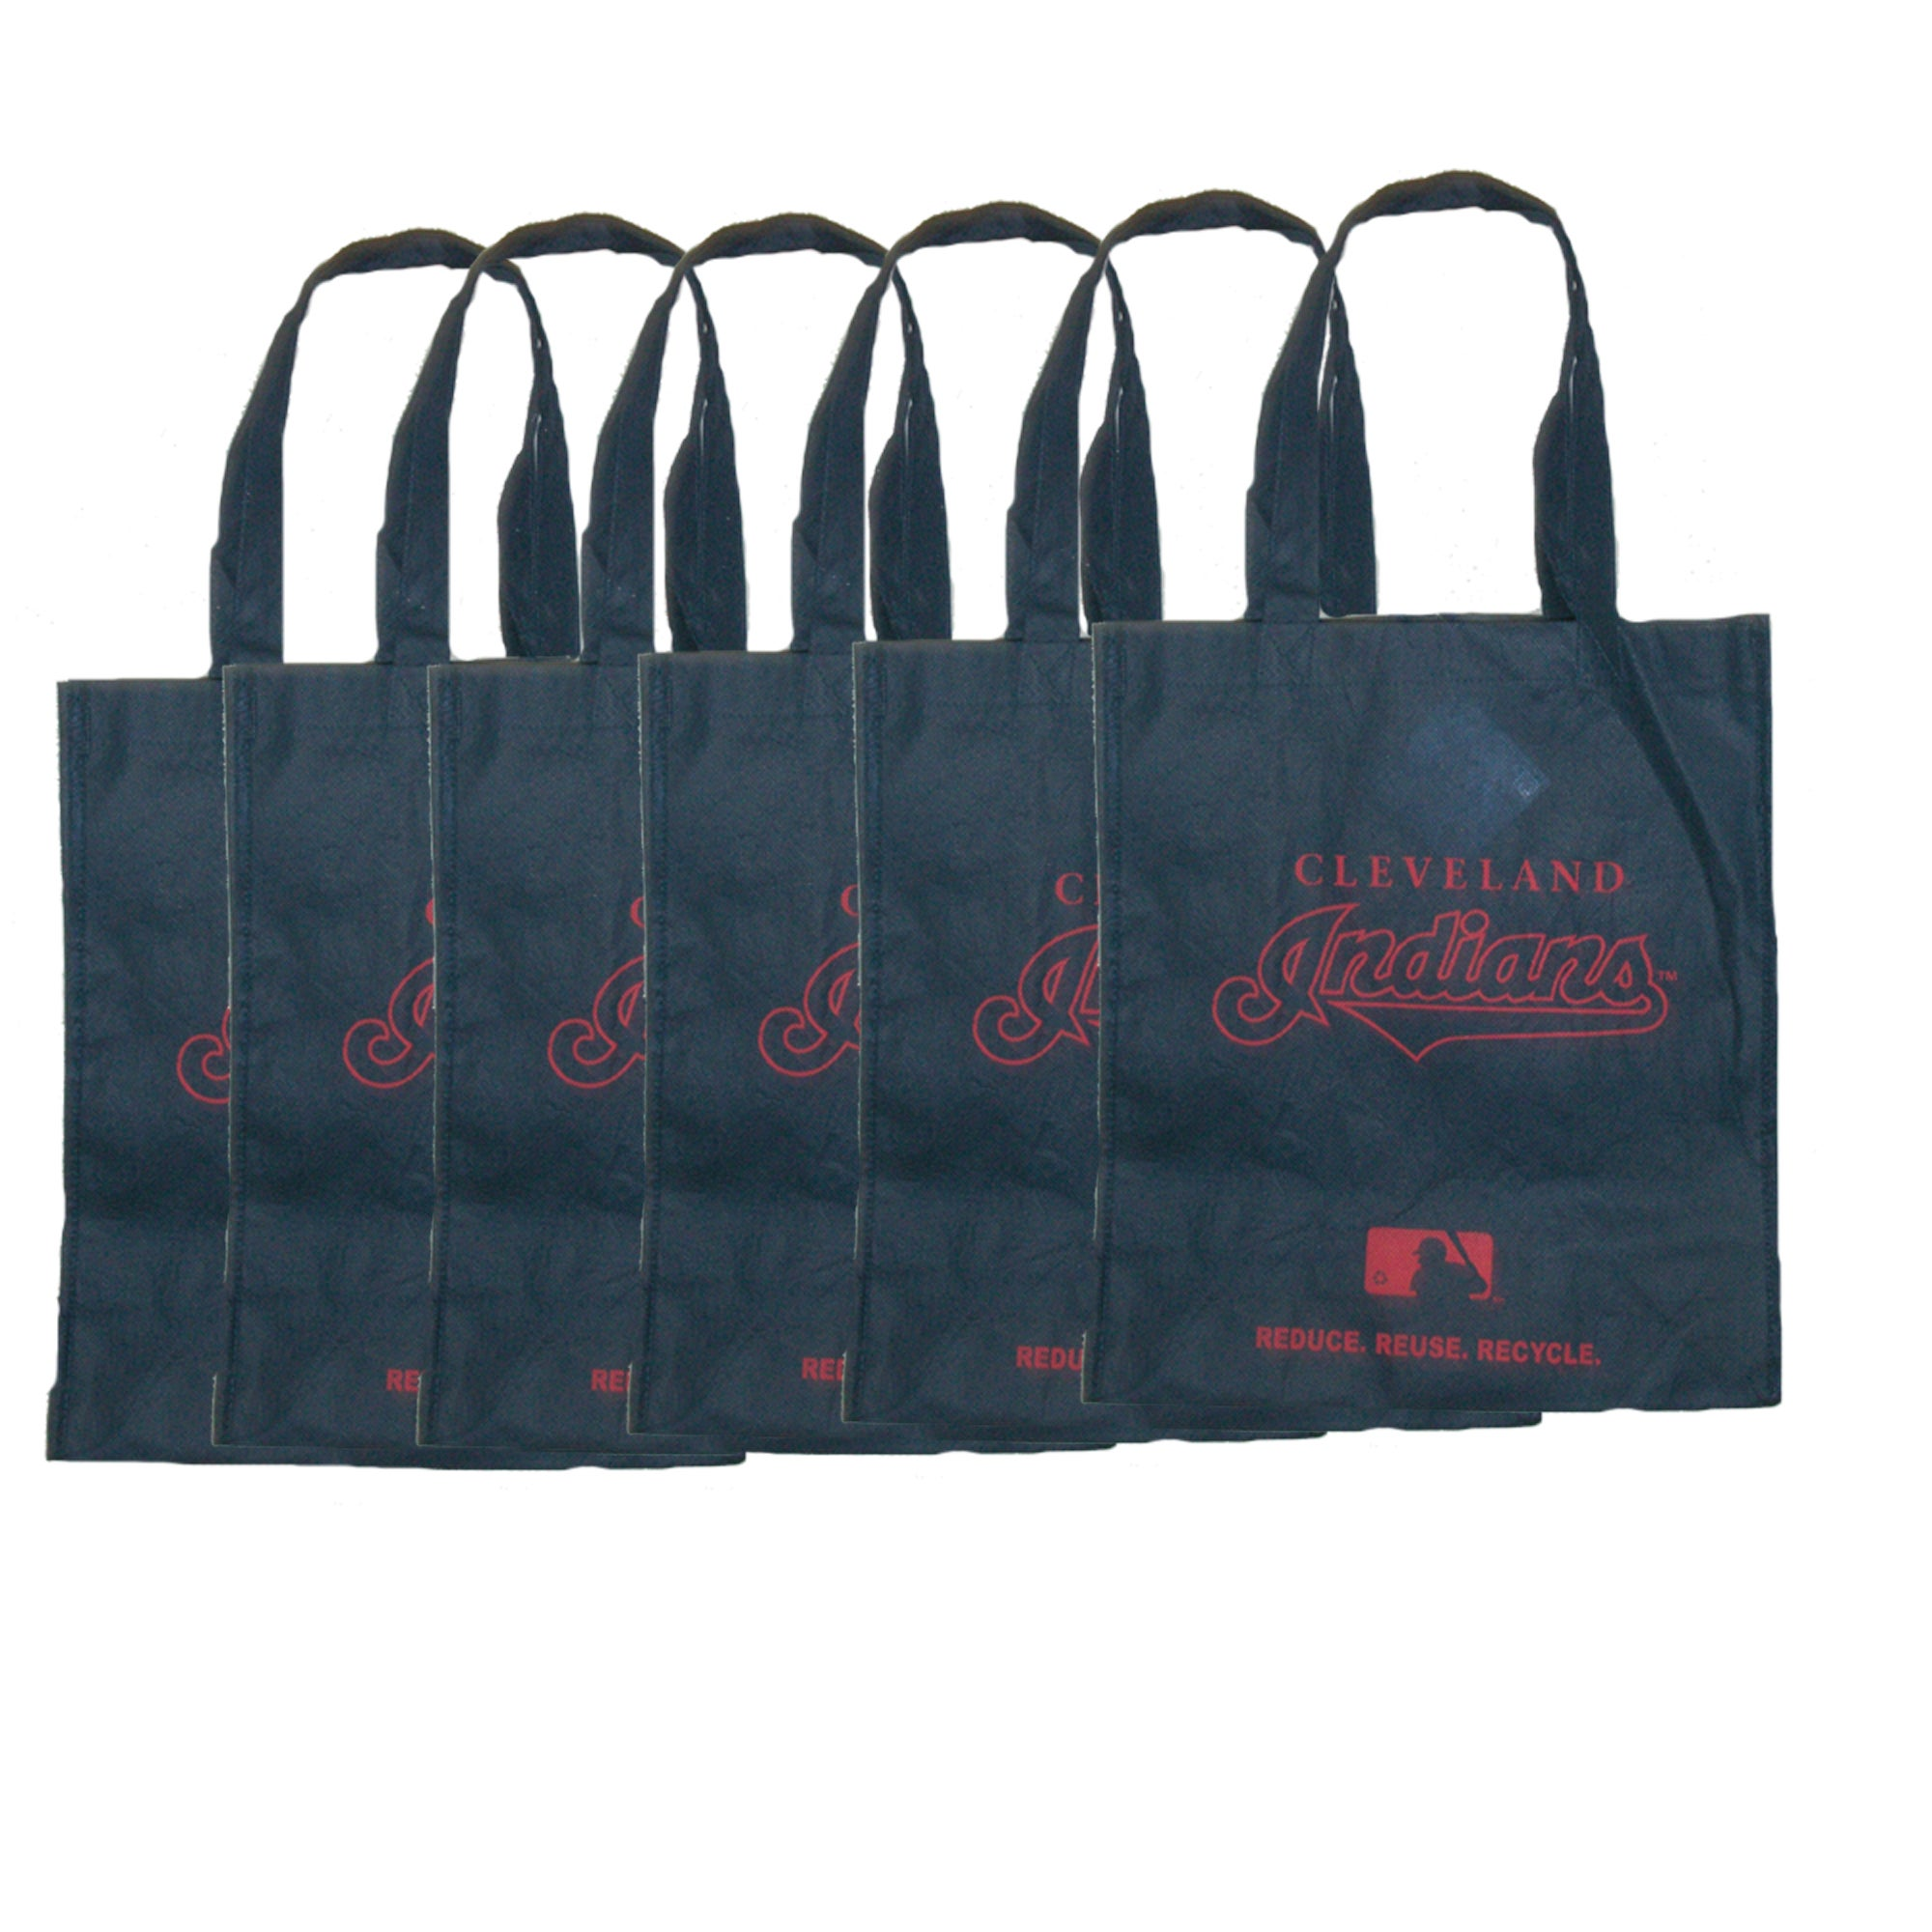 Cleveland Indians Reusable Bags (Pack of 6)